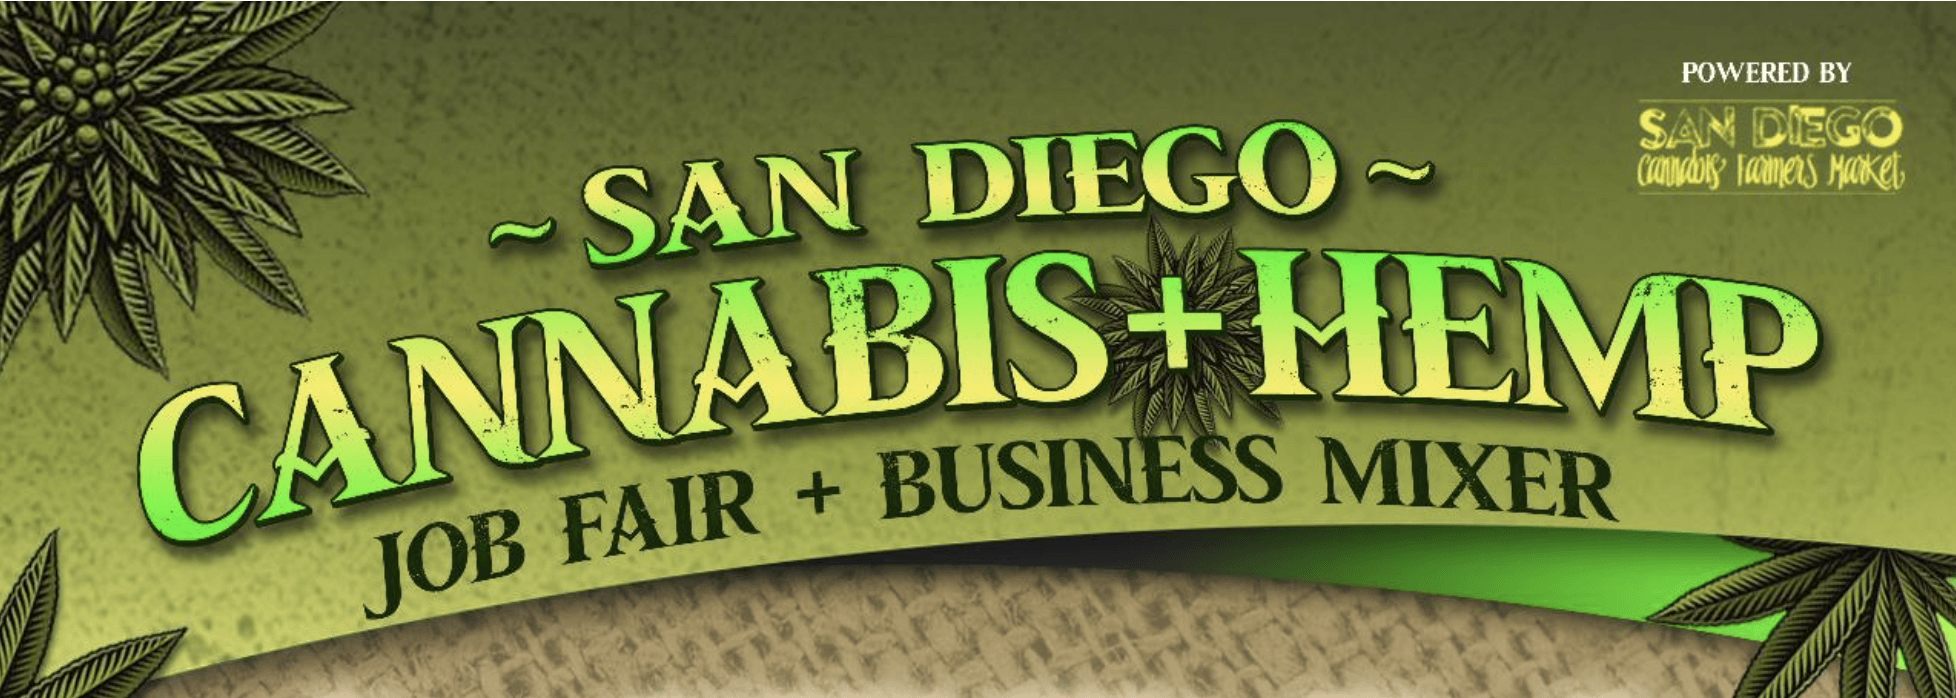 2nd Annual San Diego Cannabis Hemp Job Fair & Business Mixer